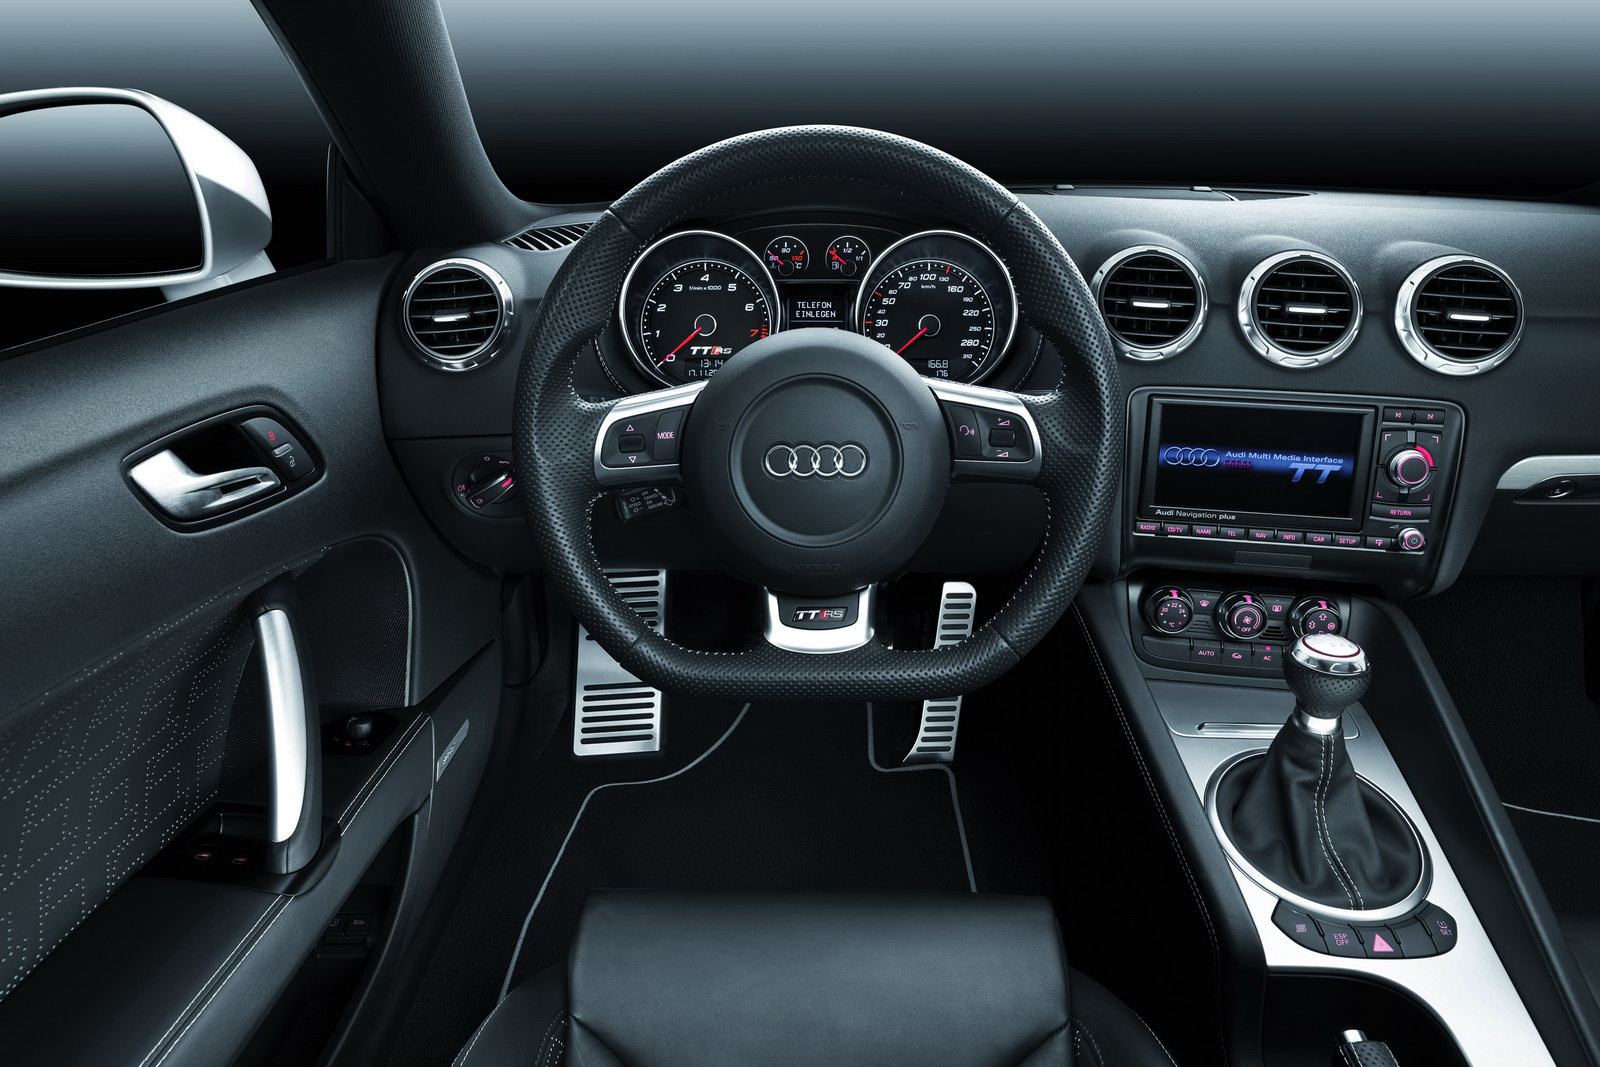 2012 Audi TT RS Reviews Requirements and Photos  NewsAutomagz